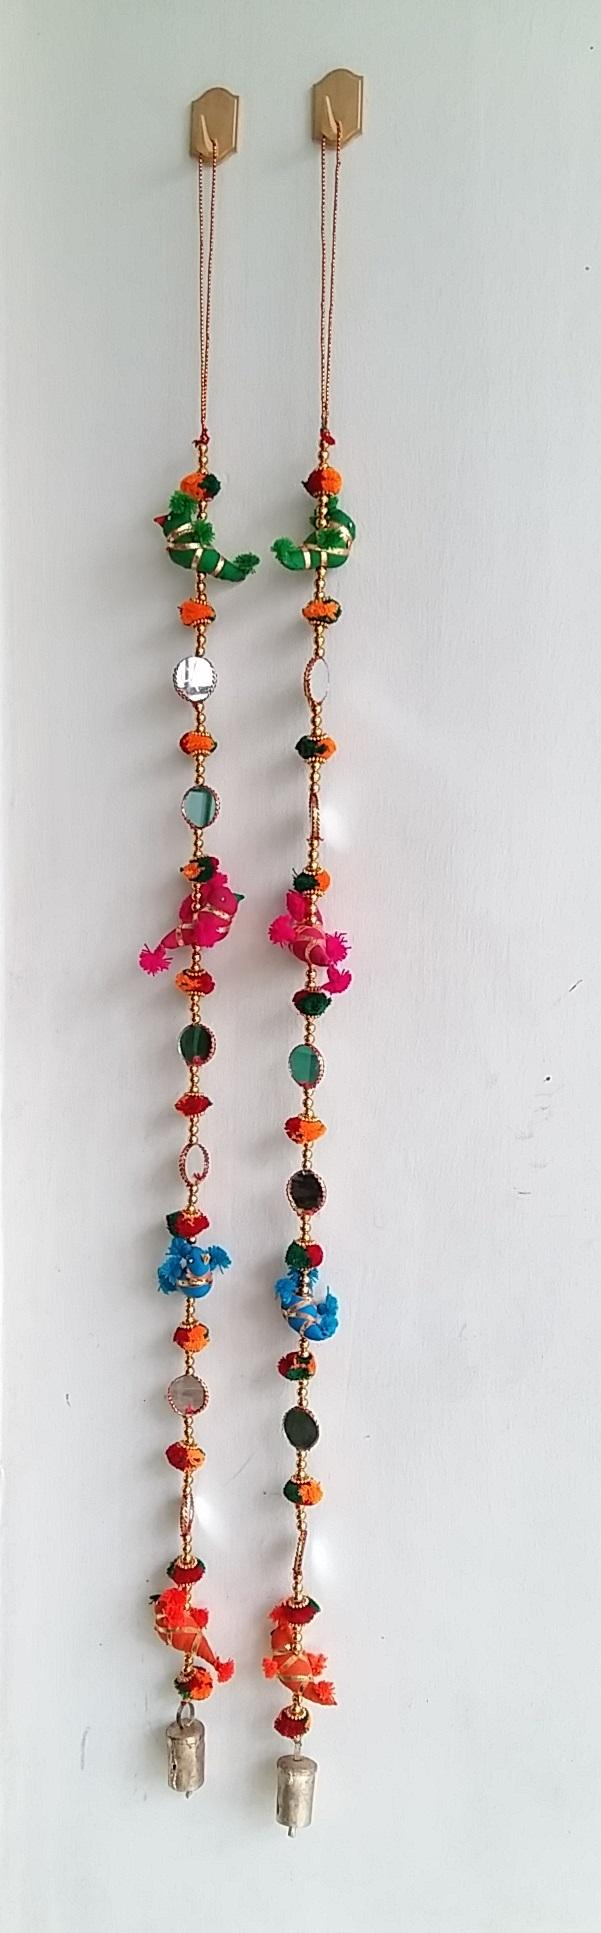 Door Hanging Toran Indian Decorative Cotton Birds in Vibrant Colors Stringed with Beads, Bell, Mirror.